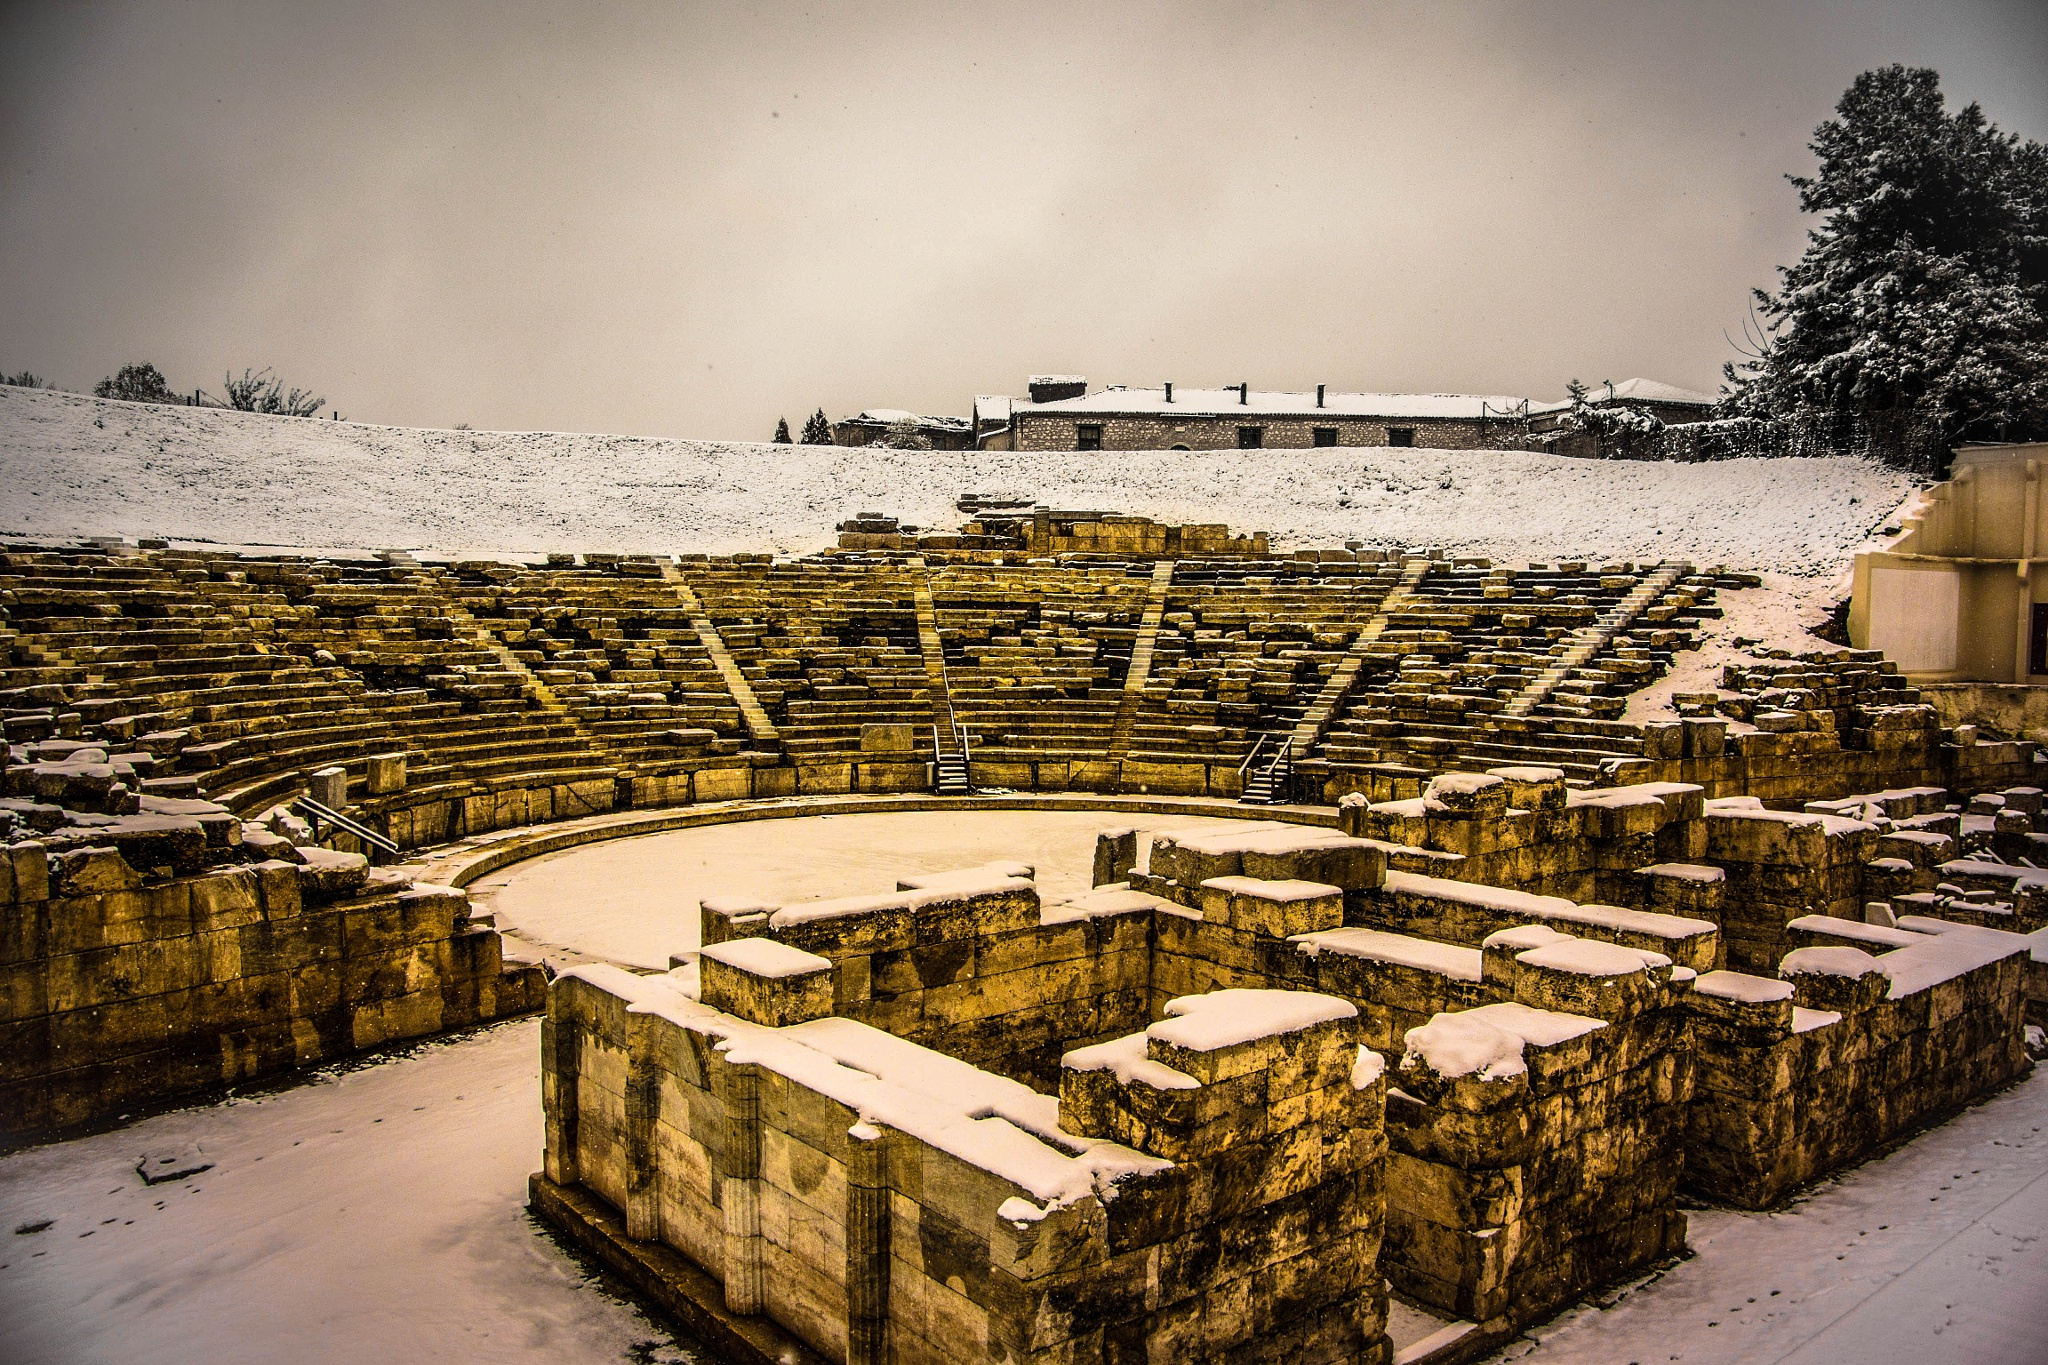 Ancient theatre covered in snow by Elias Papageorgiou (Drifter Dfr)